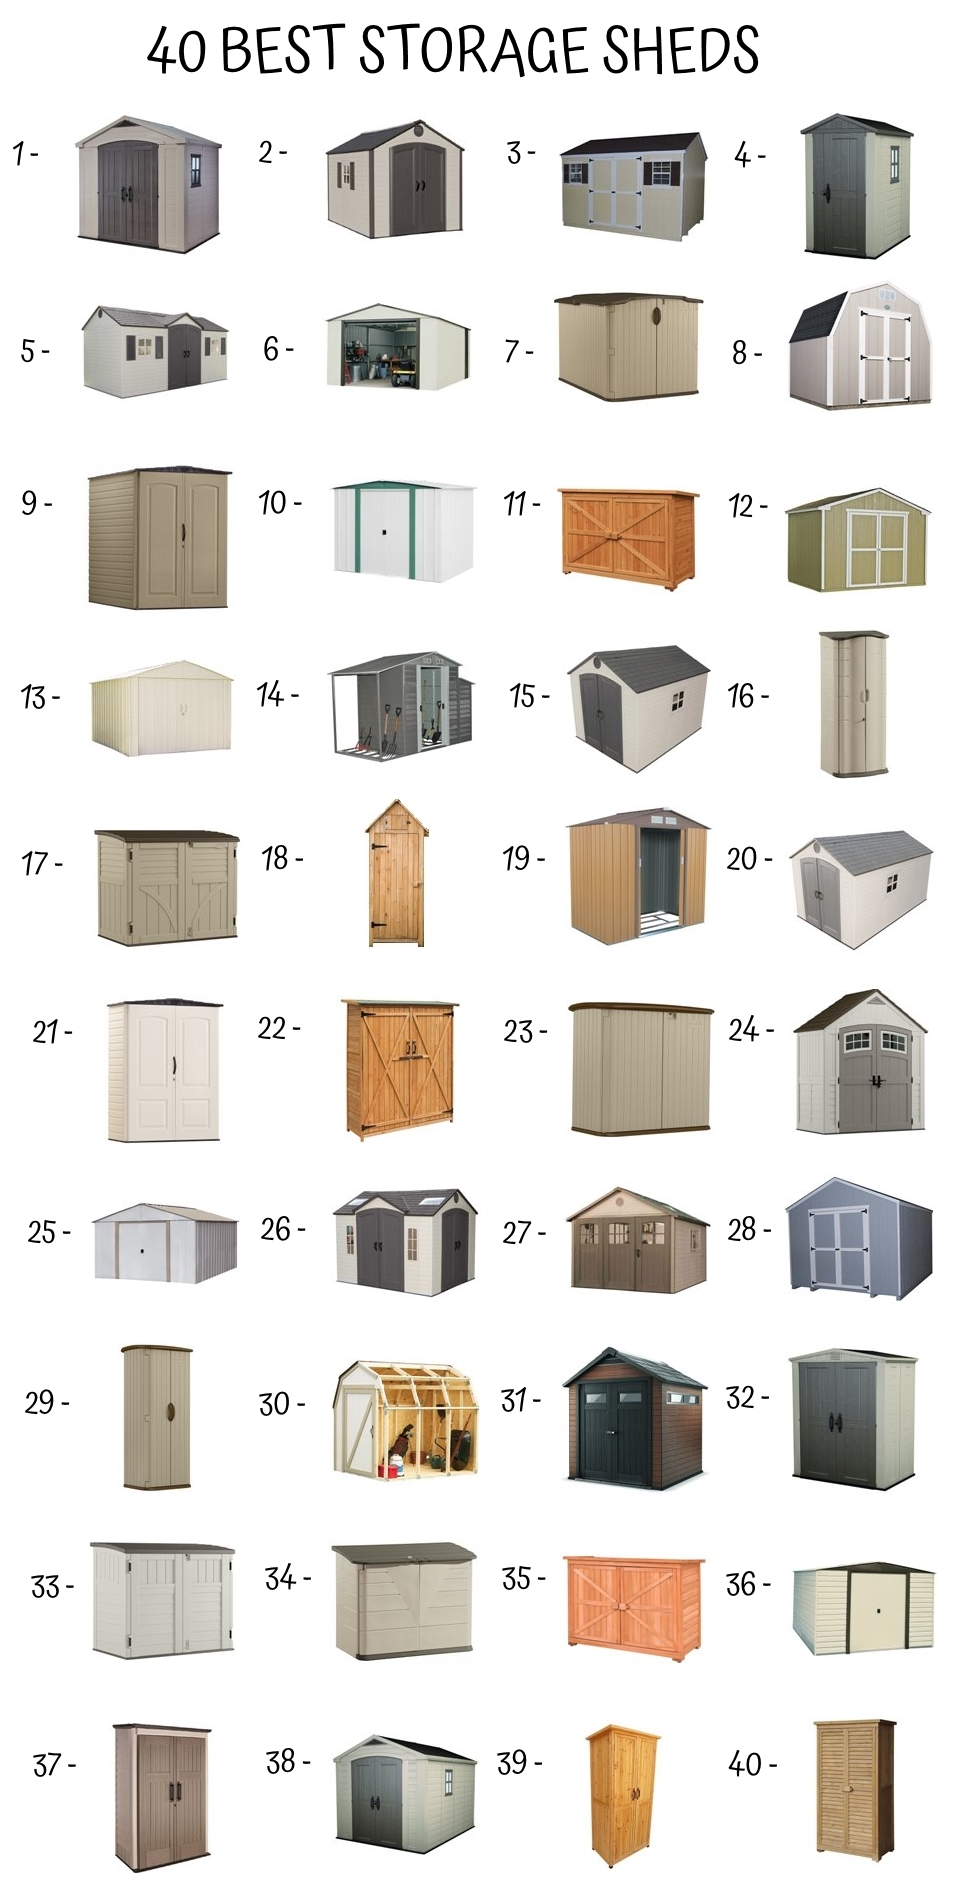 40 Best Storage Sheds